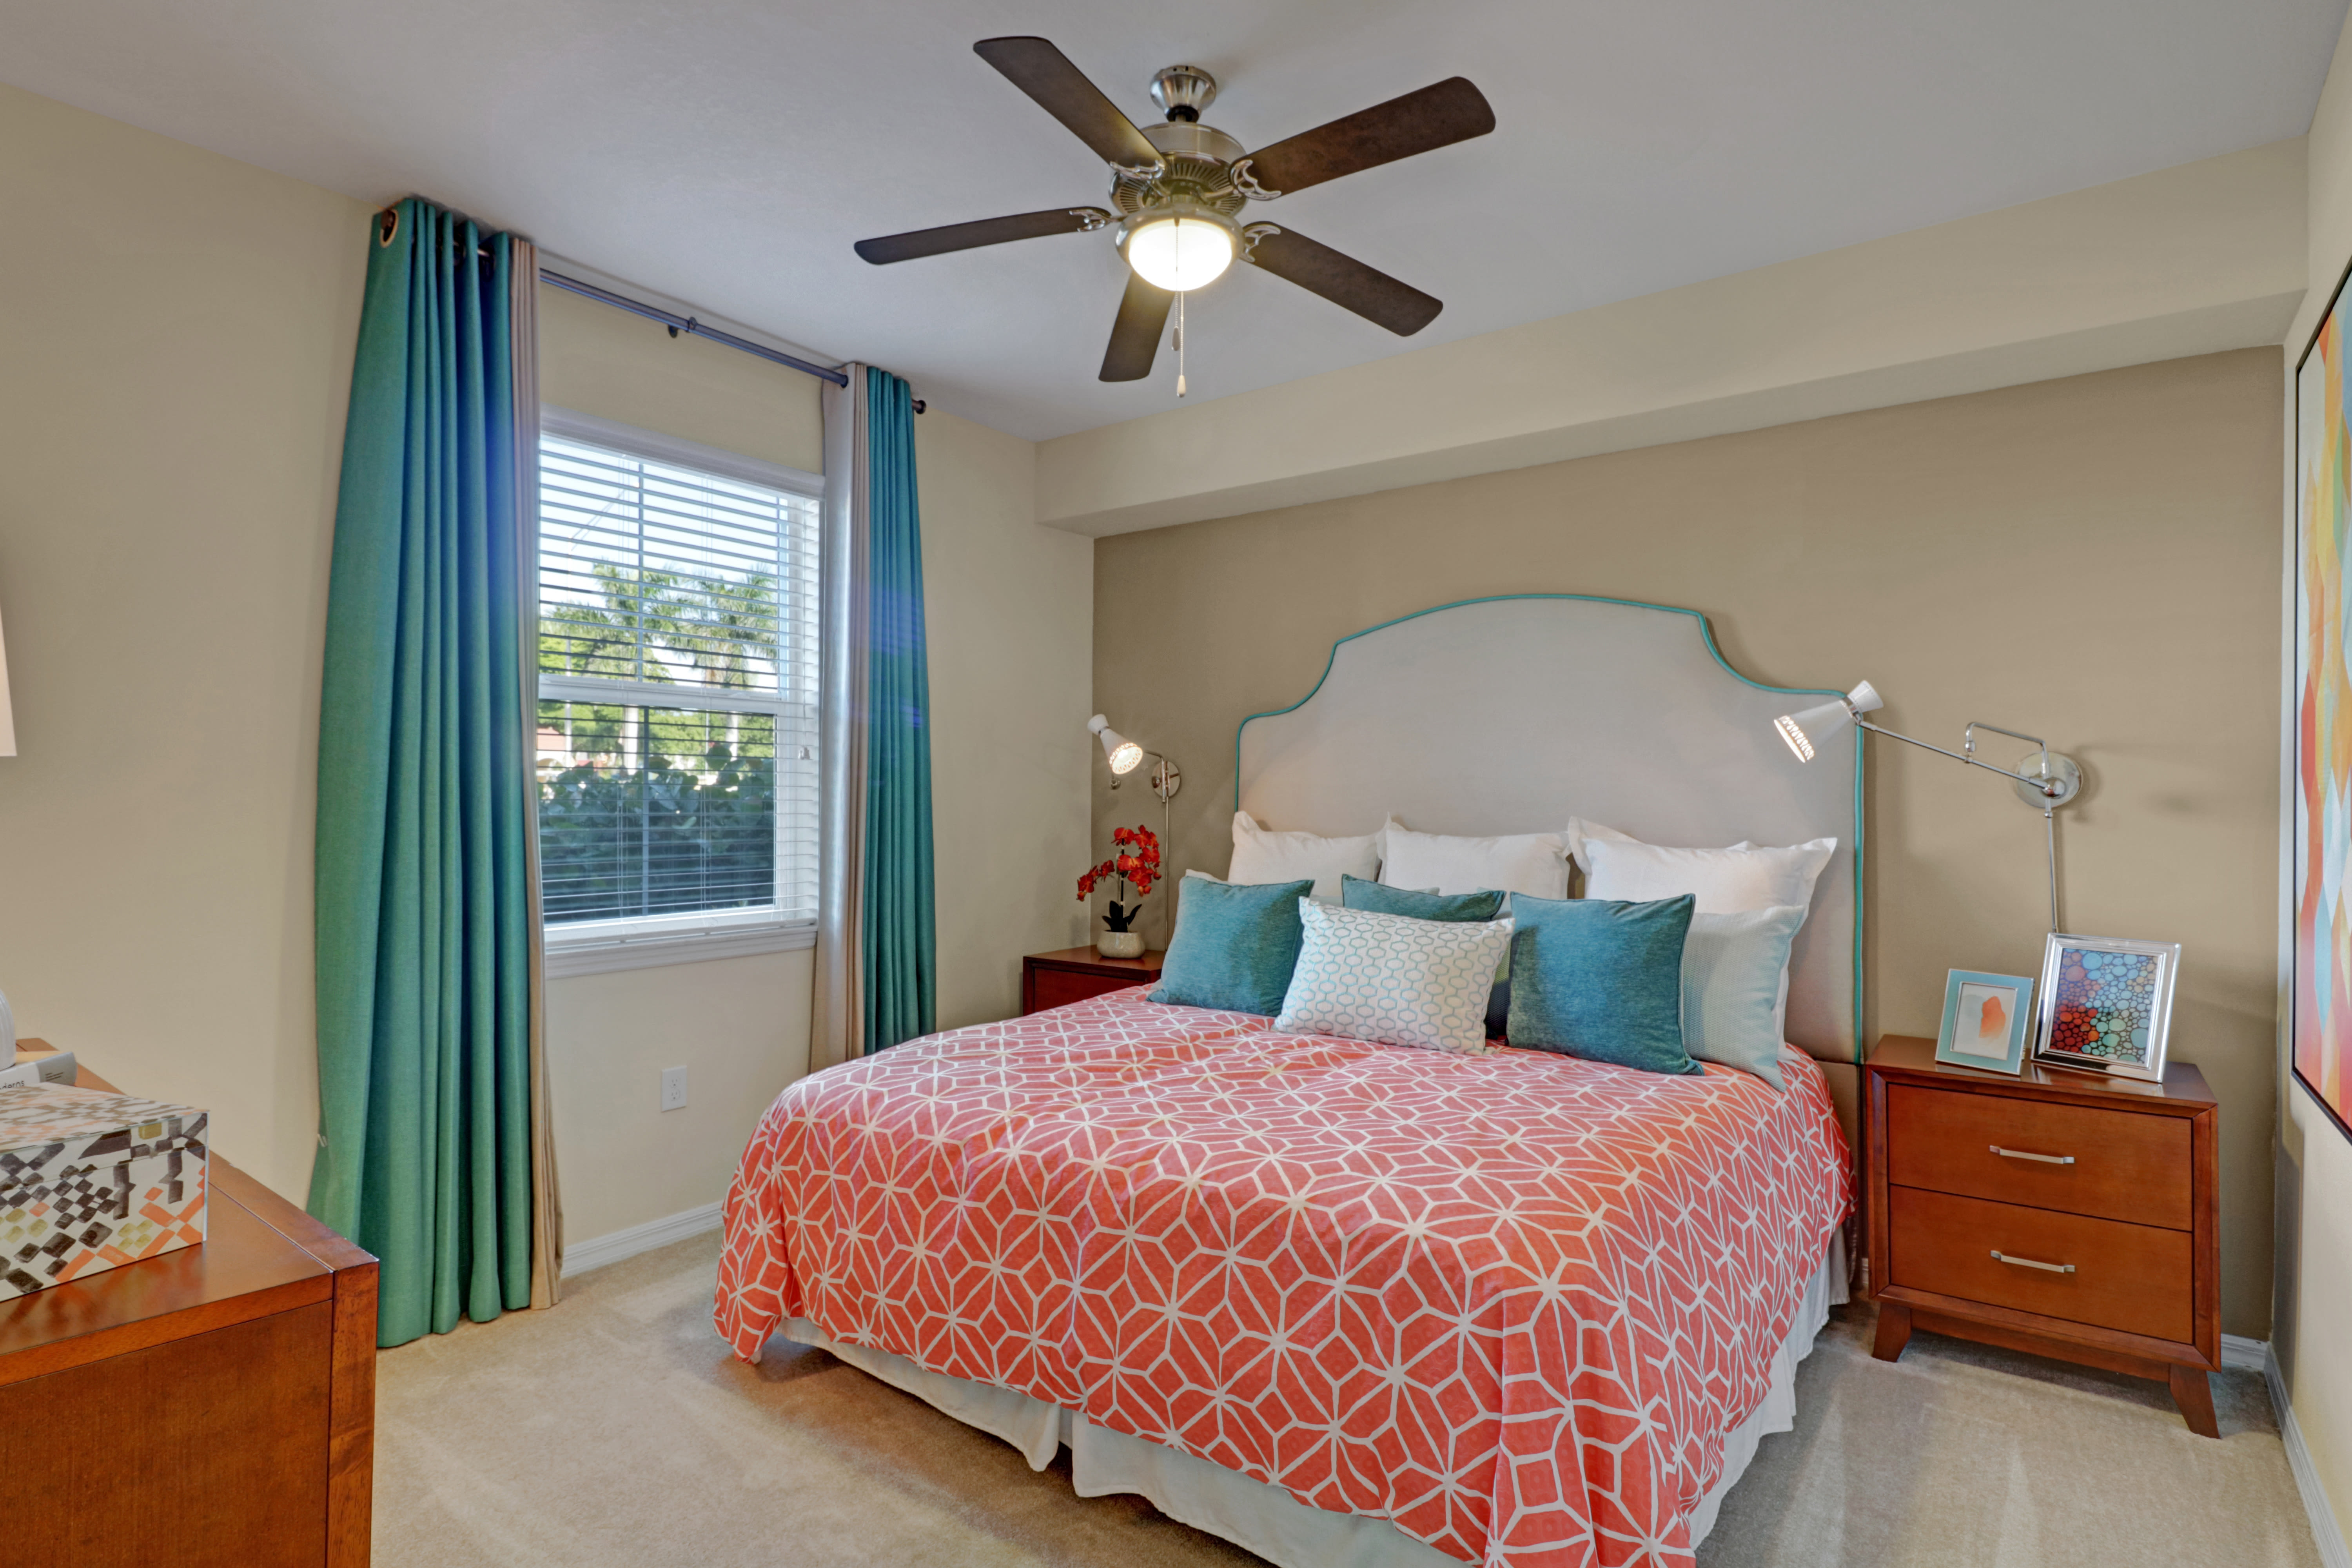 Comfortable bedroom with ceiling fan at Linden Pointe in Pompano Beach, Florida